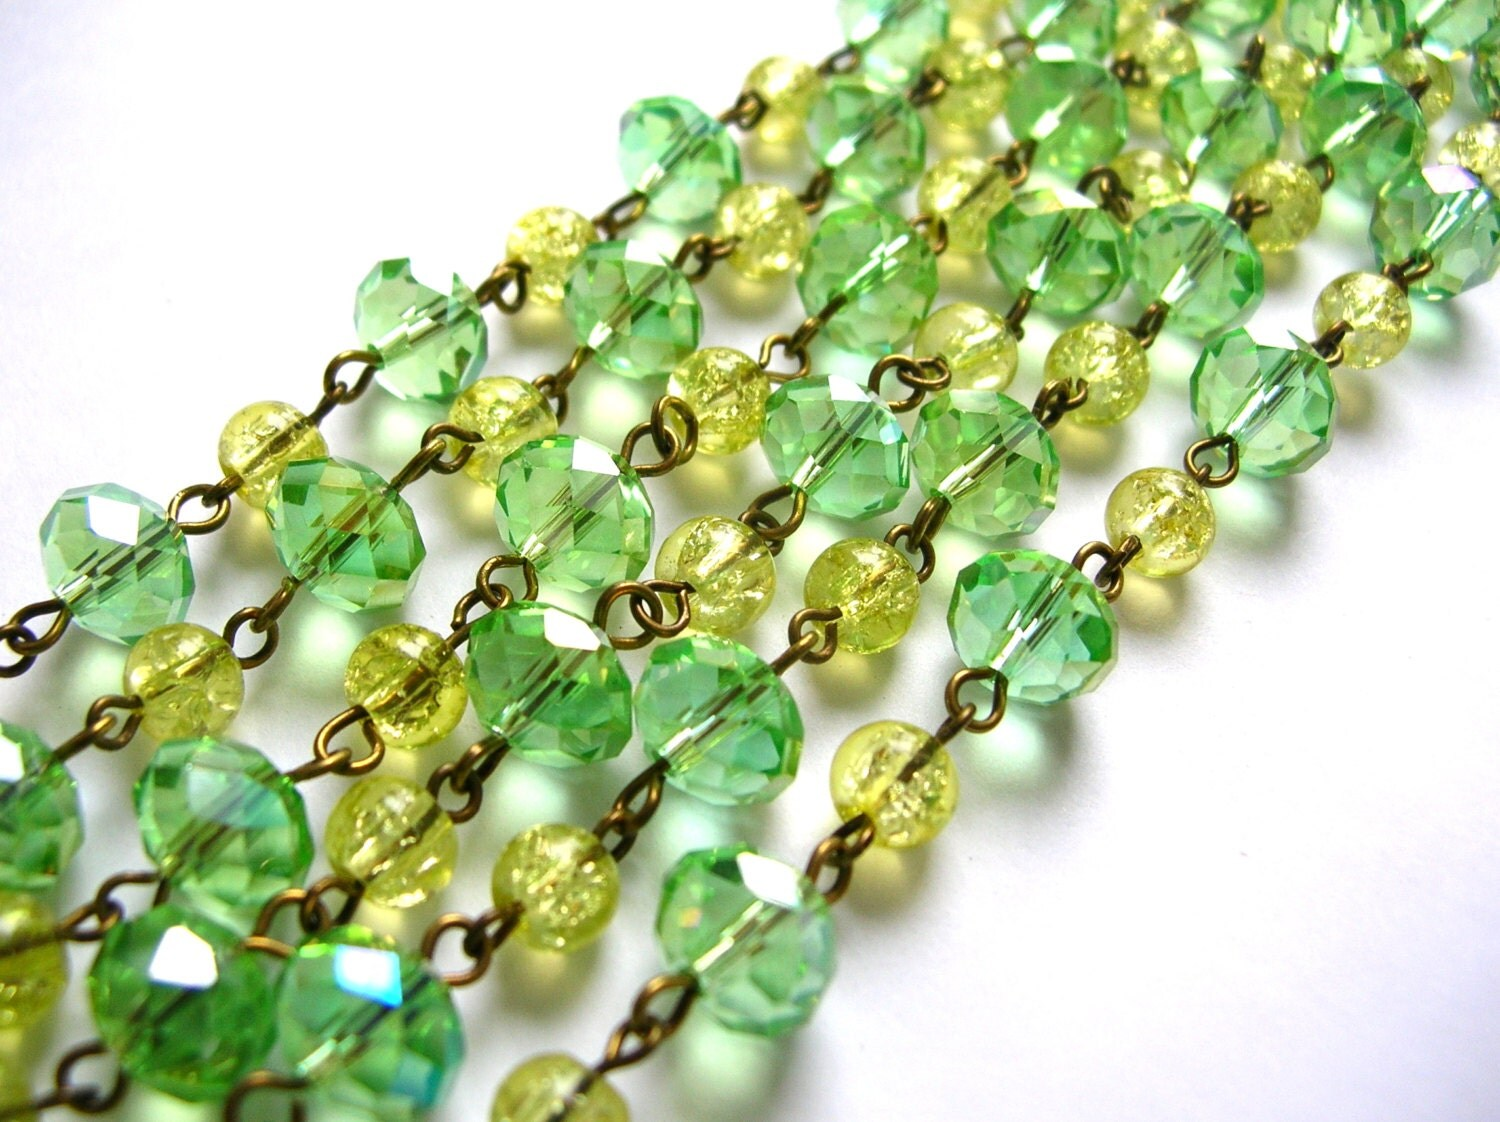 Lime Green bead chain 3 feet - 2VintageGypsies